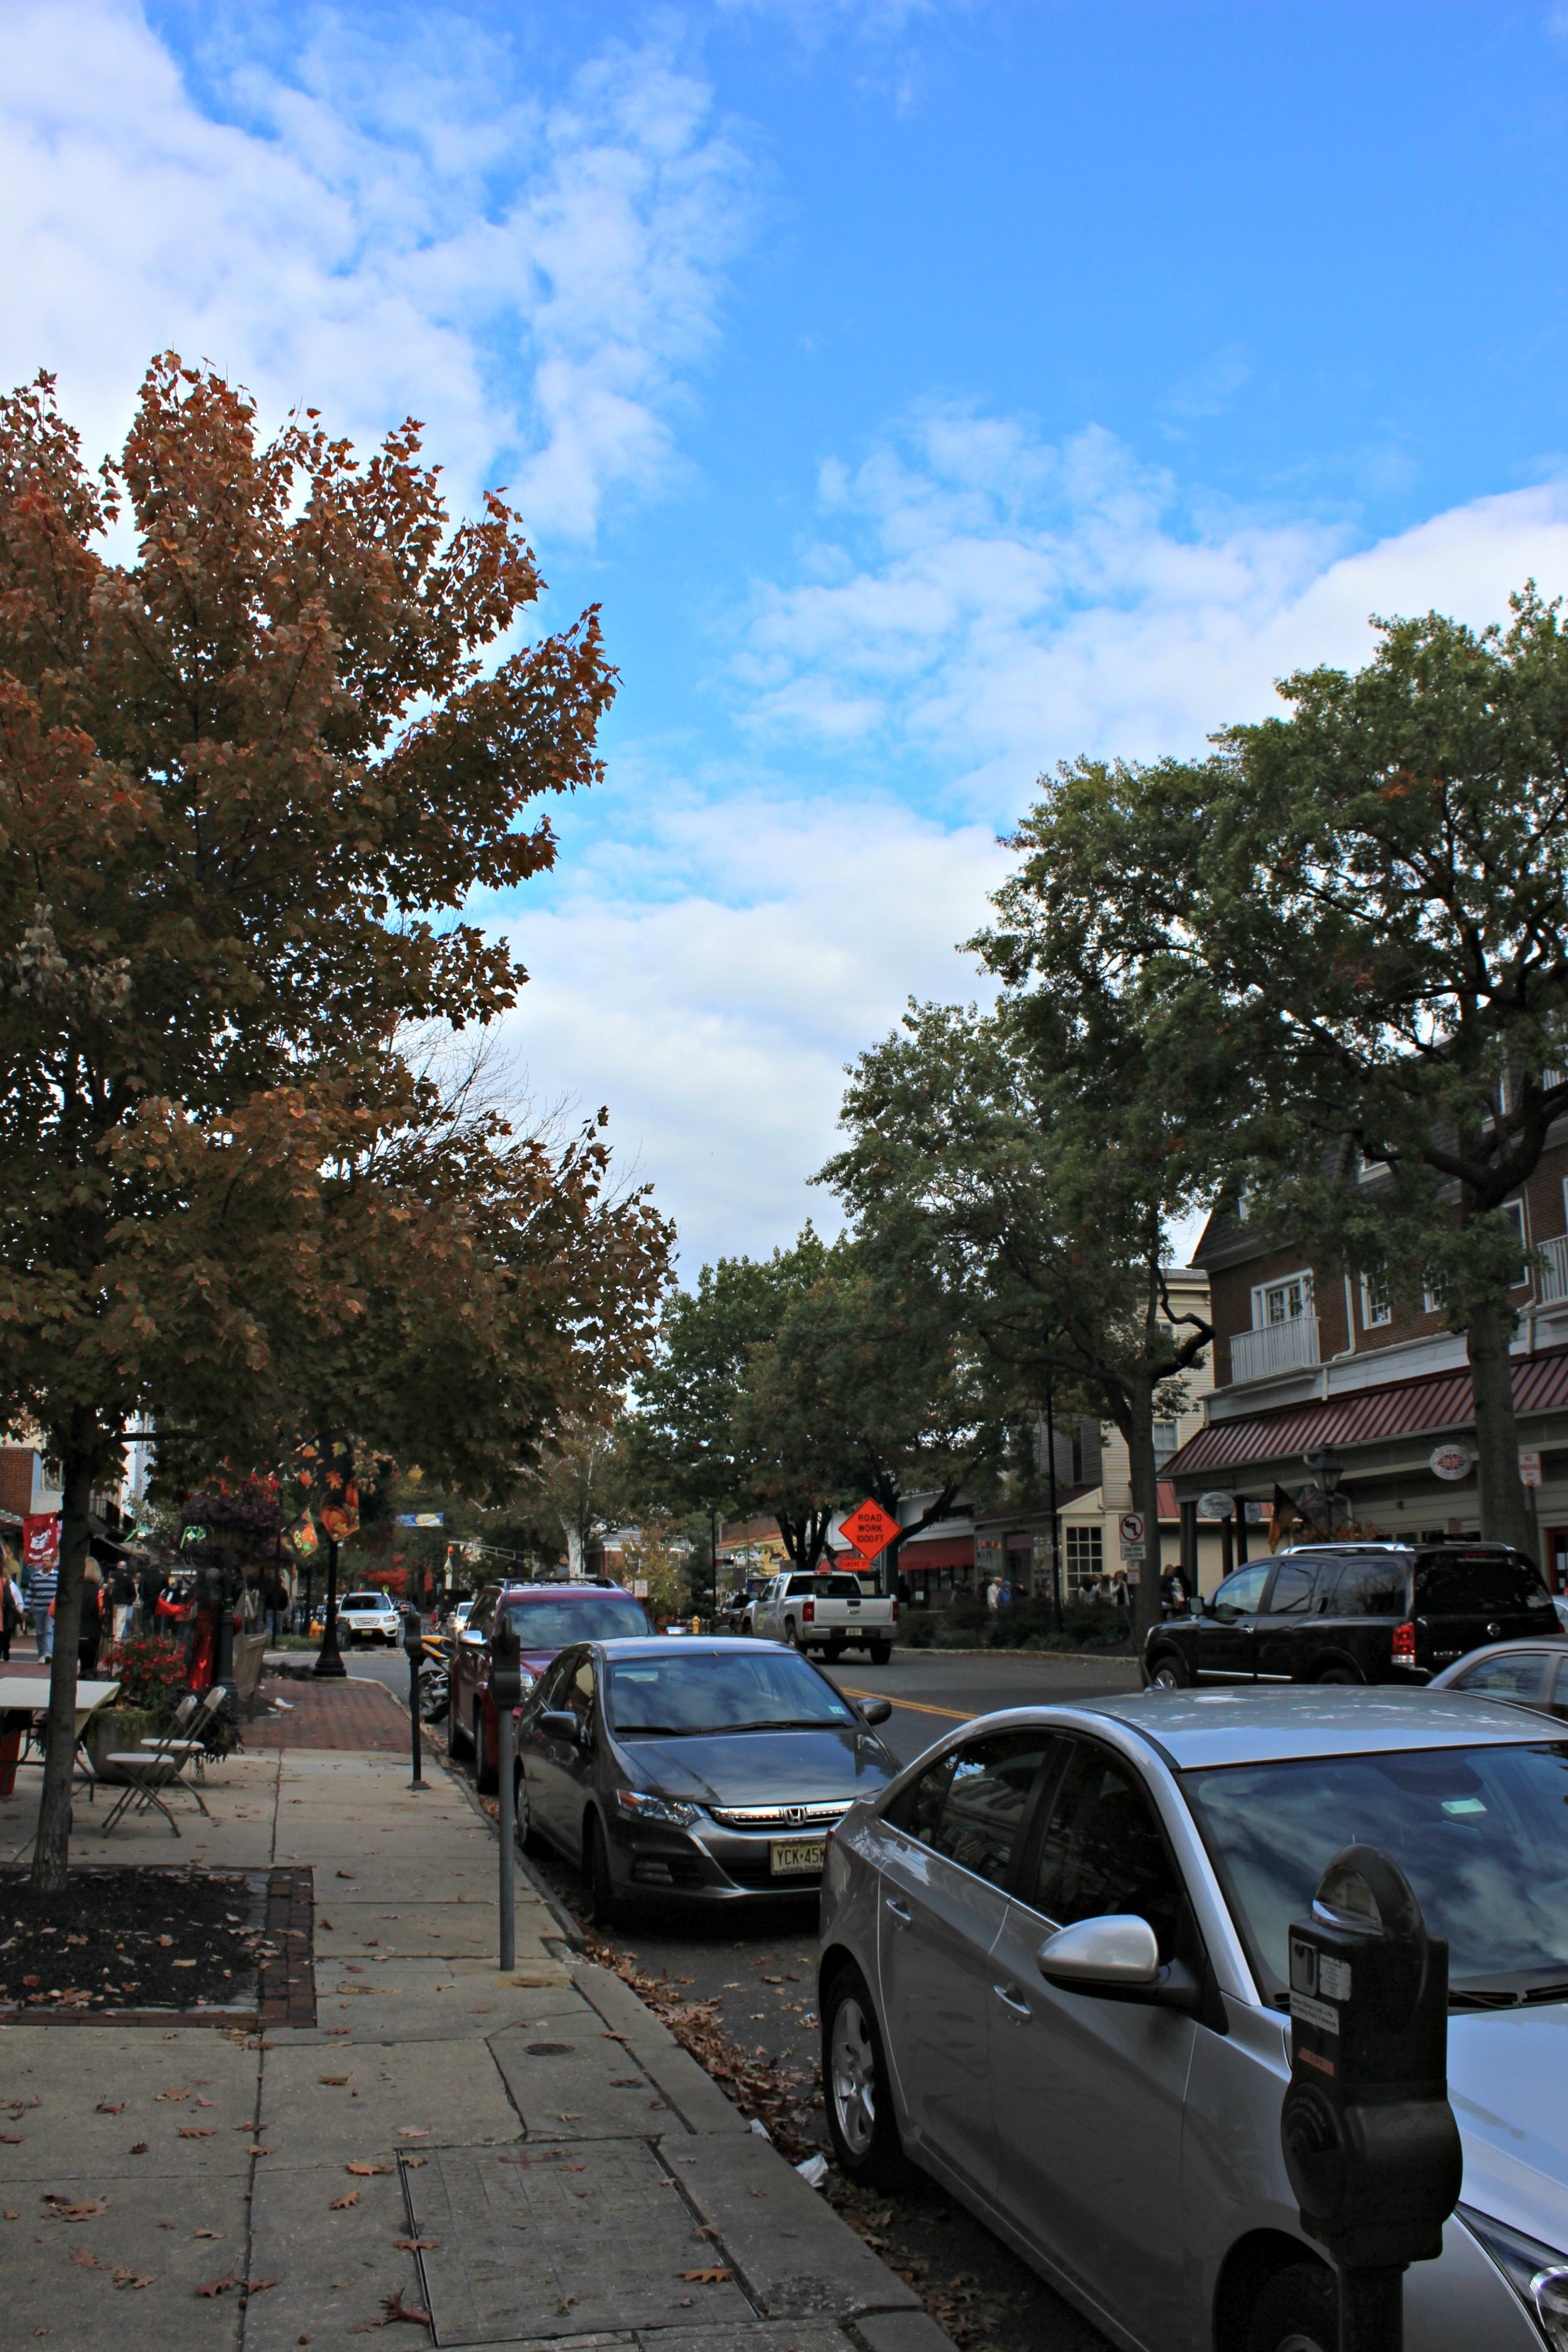 Small Town NJ: Haddonfield // want to explore New Jersey? Here's a look into one charming town in South Jersey